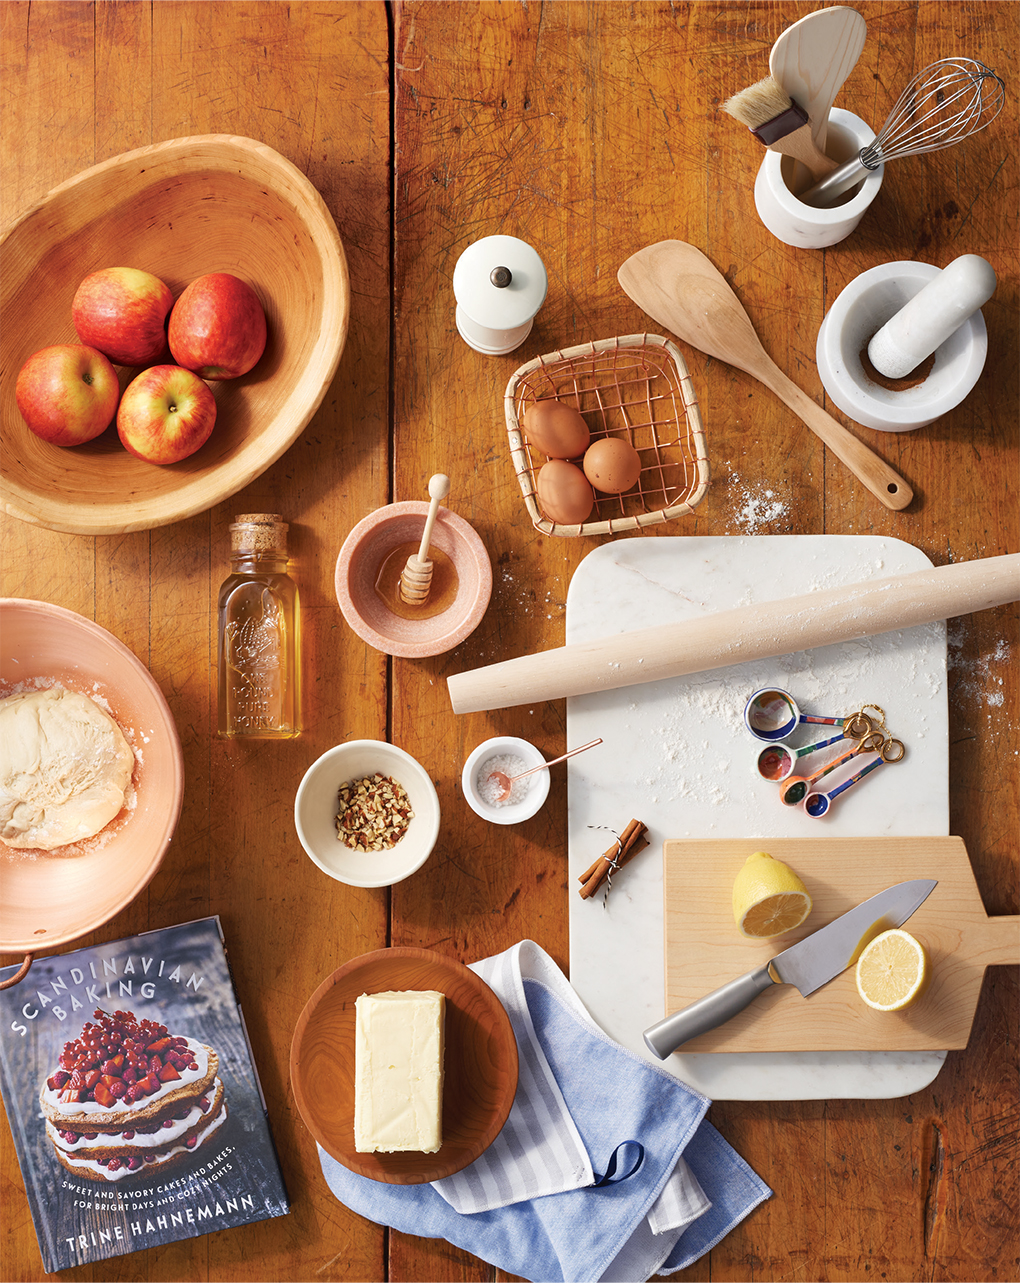 A wooden table full of holiday gift ideas for the kitchen, including a French rolling pin, honey, spatula, ceramic and marble bowls, and more.